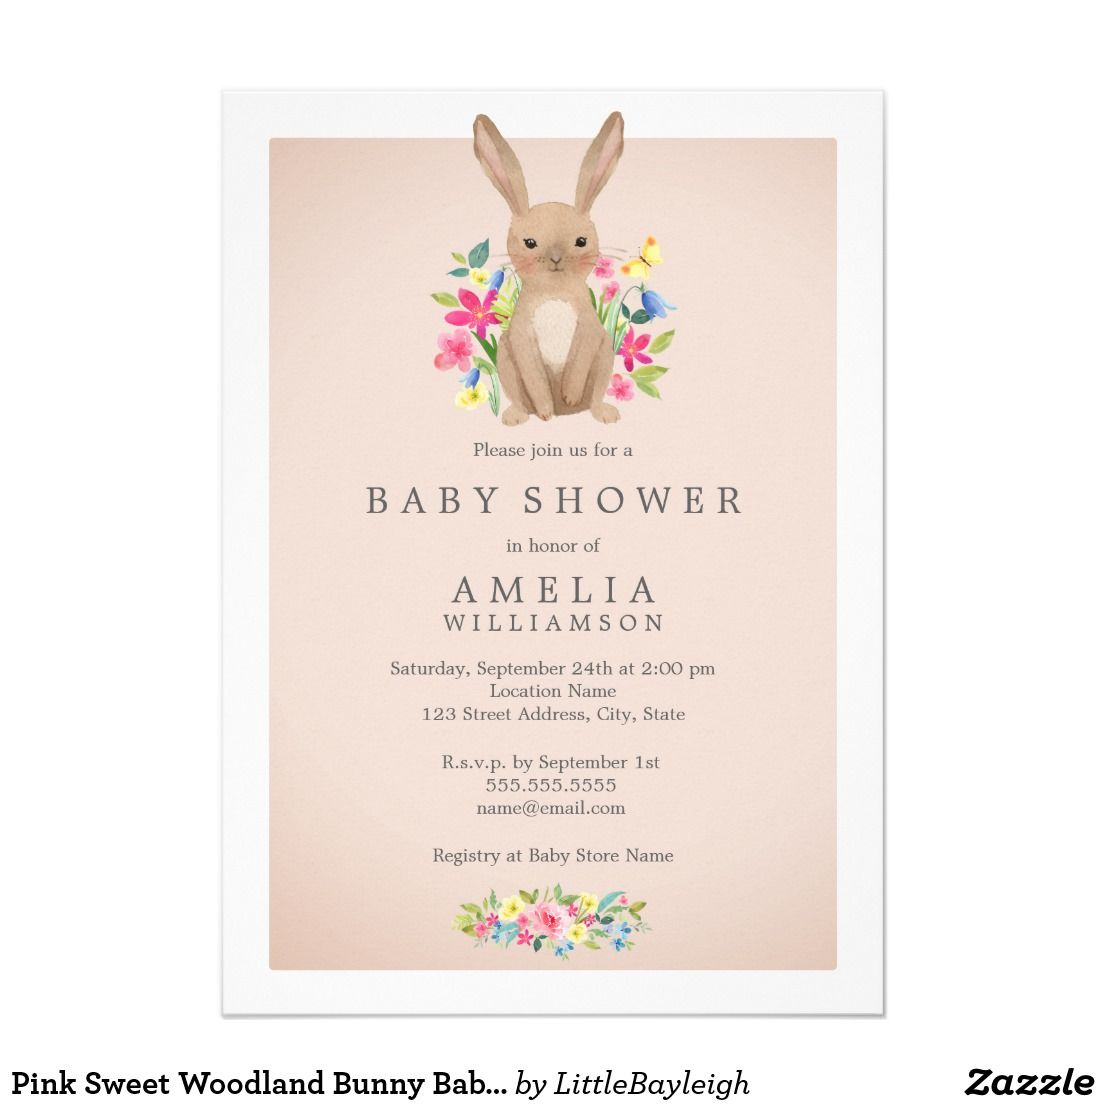 Pink Sweet Woodland Bunny Baby Shower Invitation | Baby Shower ...